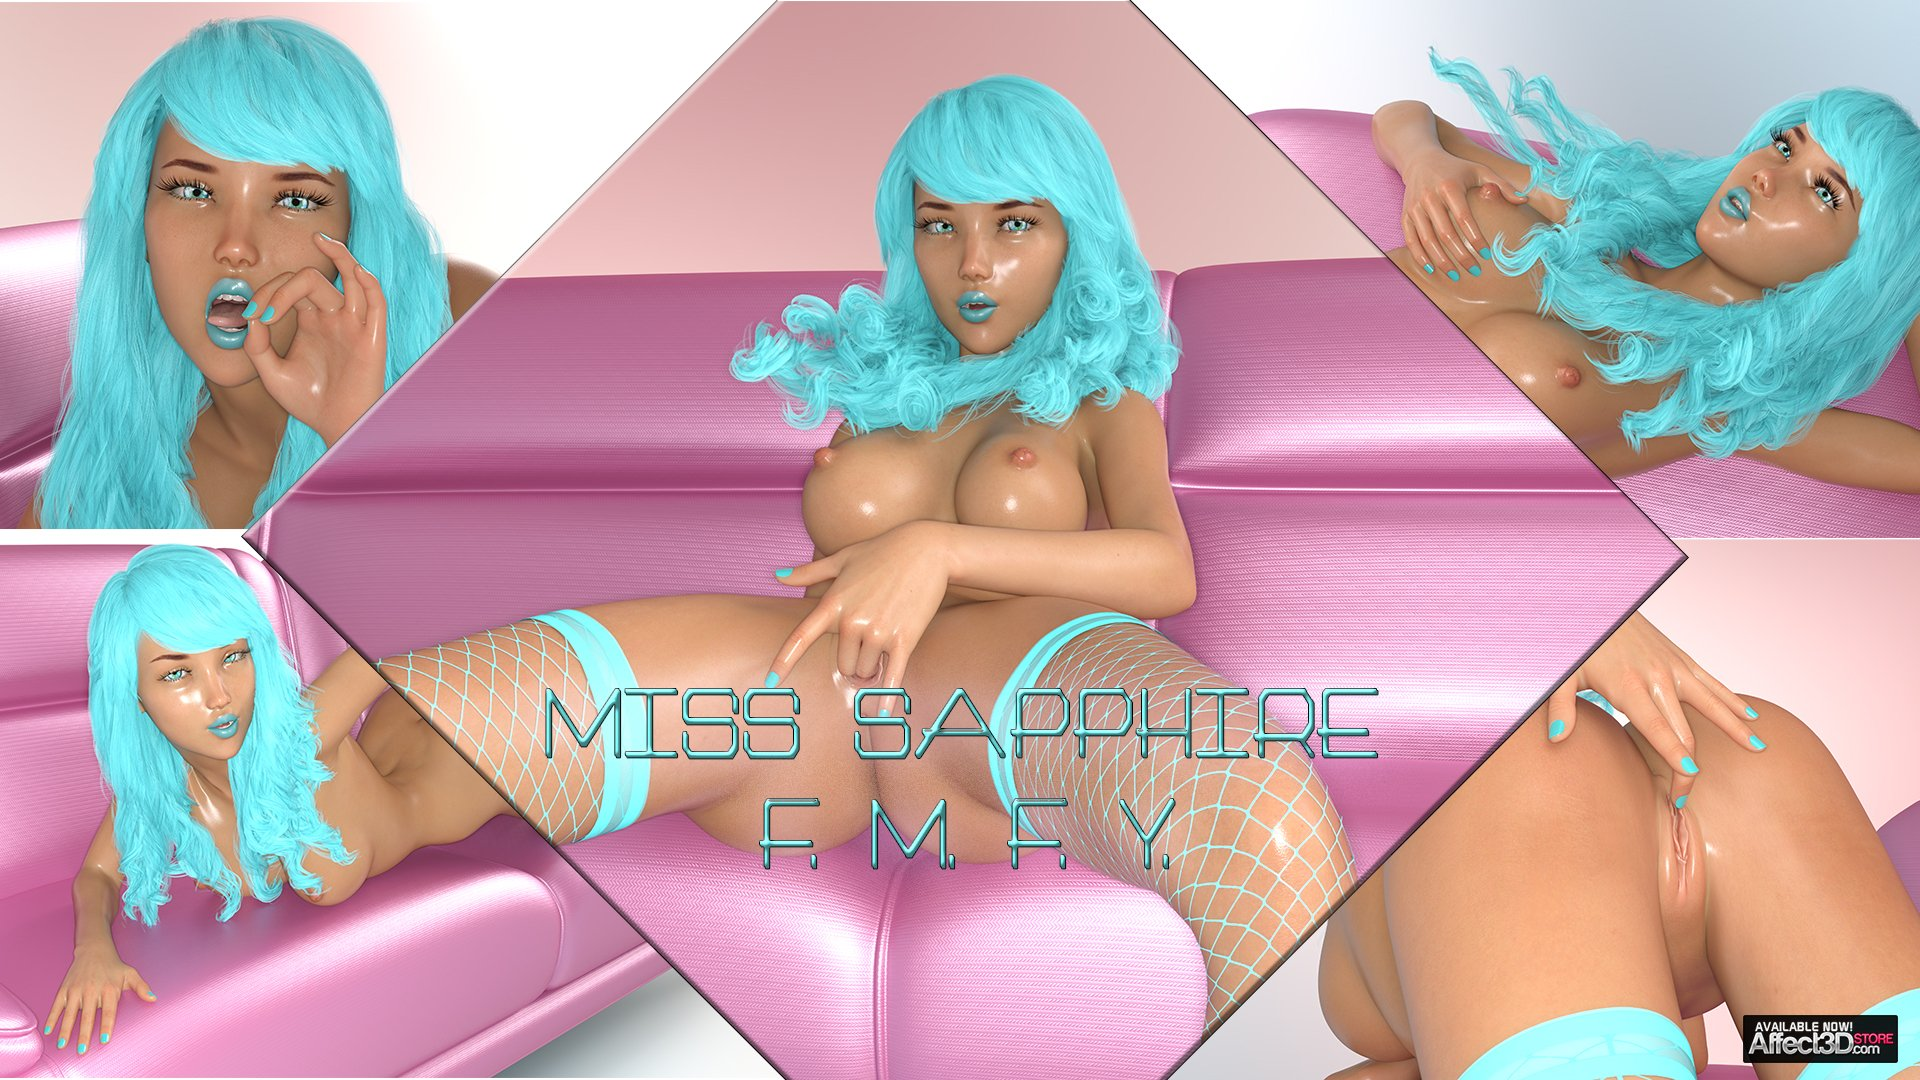 New animated release: Miss Sapphire, Fucking Myself For You! Watch the trailer!